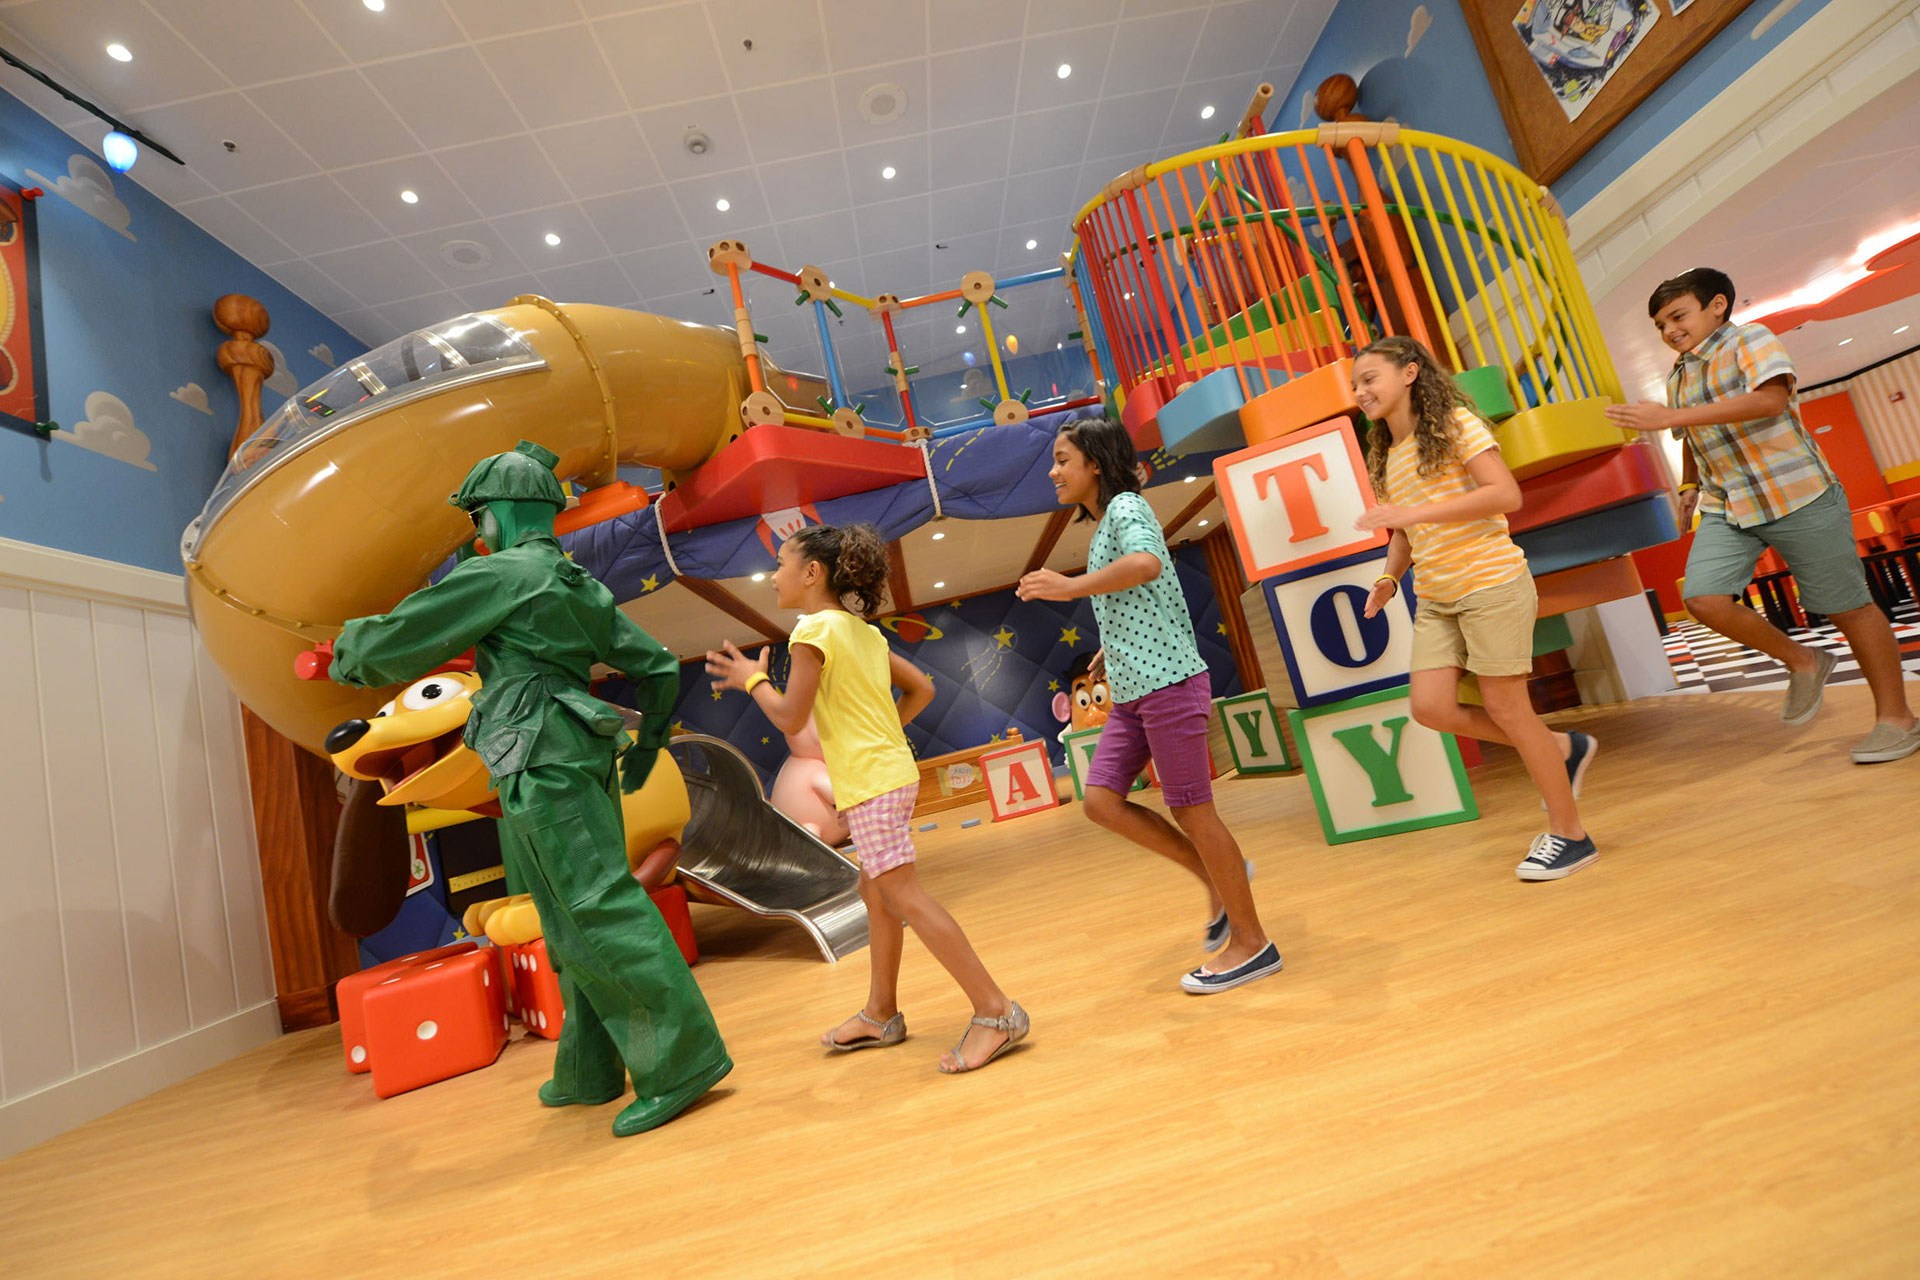 Andy's Toy Room at Kids' Club on Disney Cruise Line; Courtesy of Disney